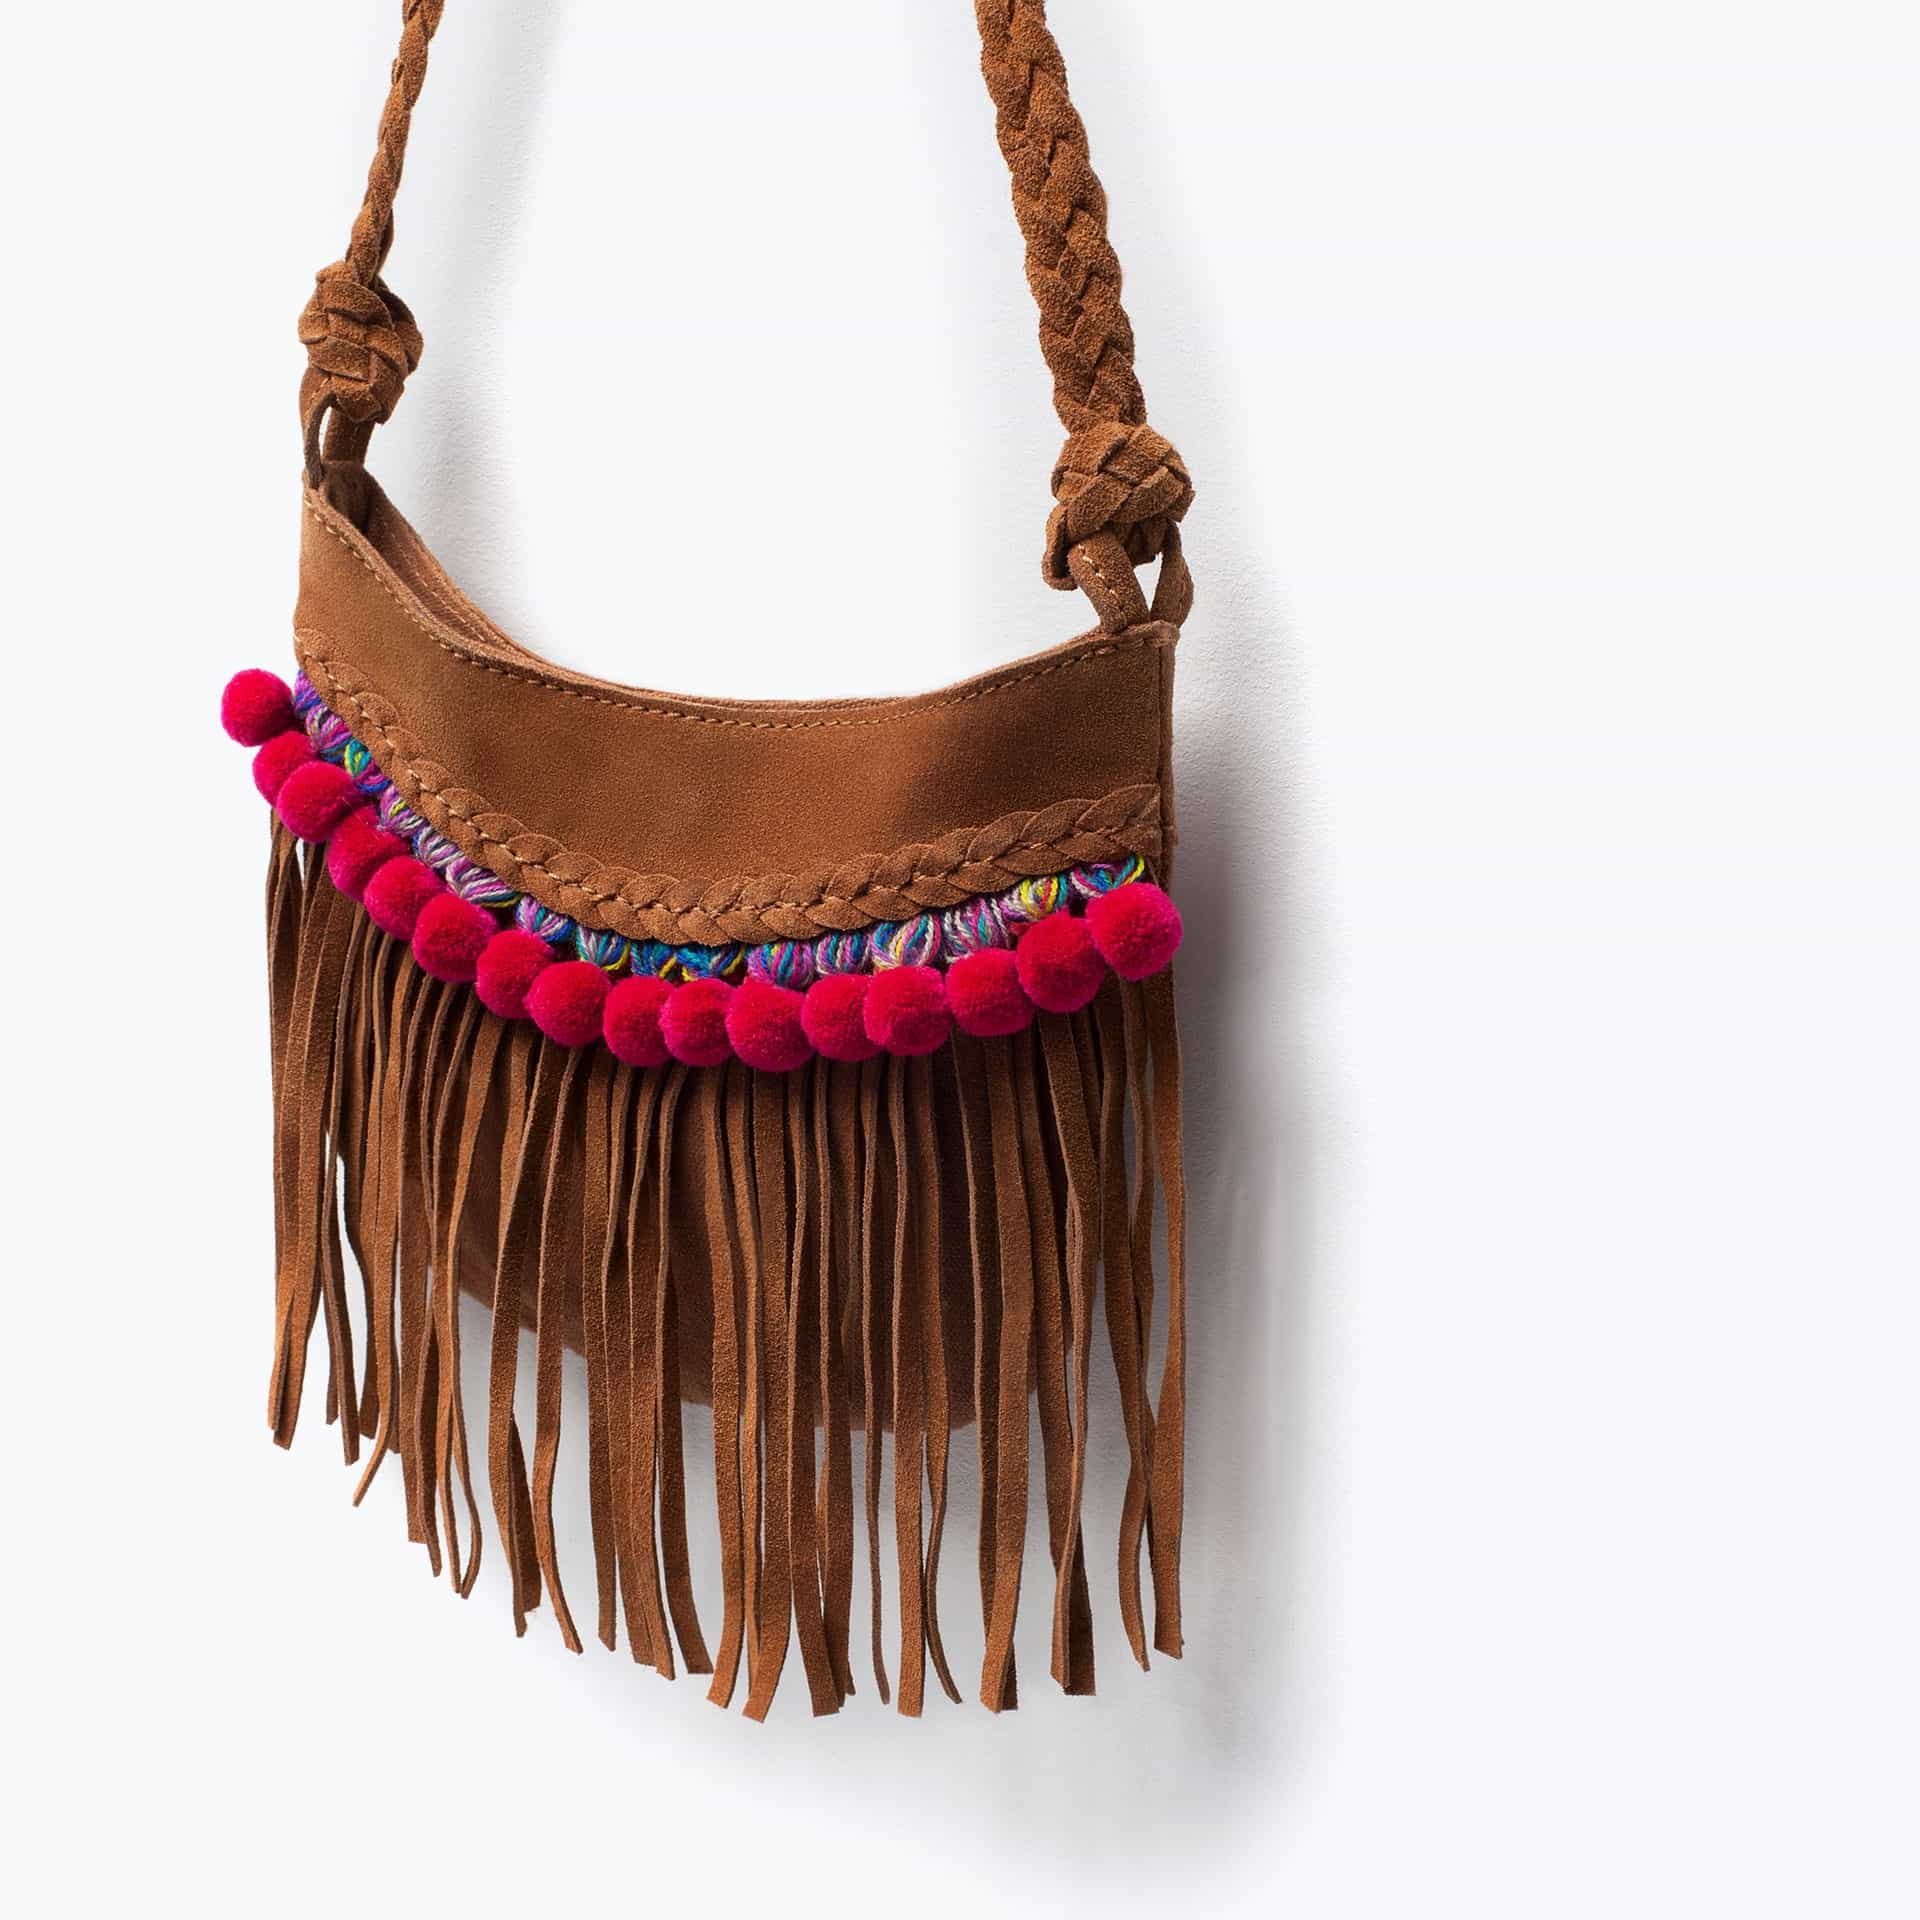 Zara Handbags Online Ping India Fringed Brown Leather Bag Wallpaper For You